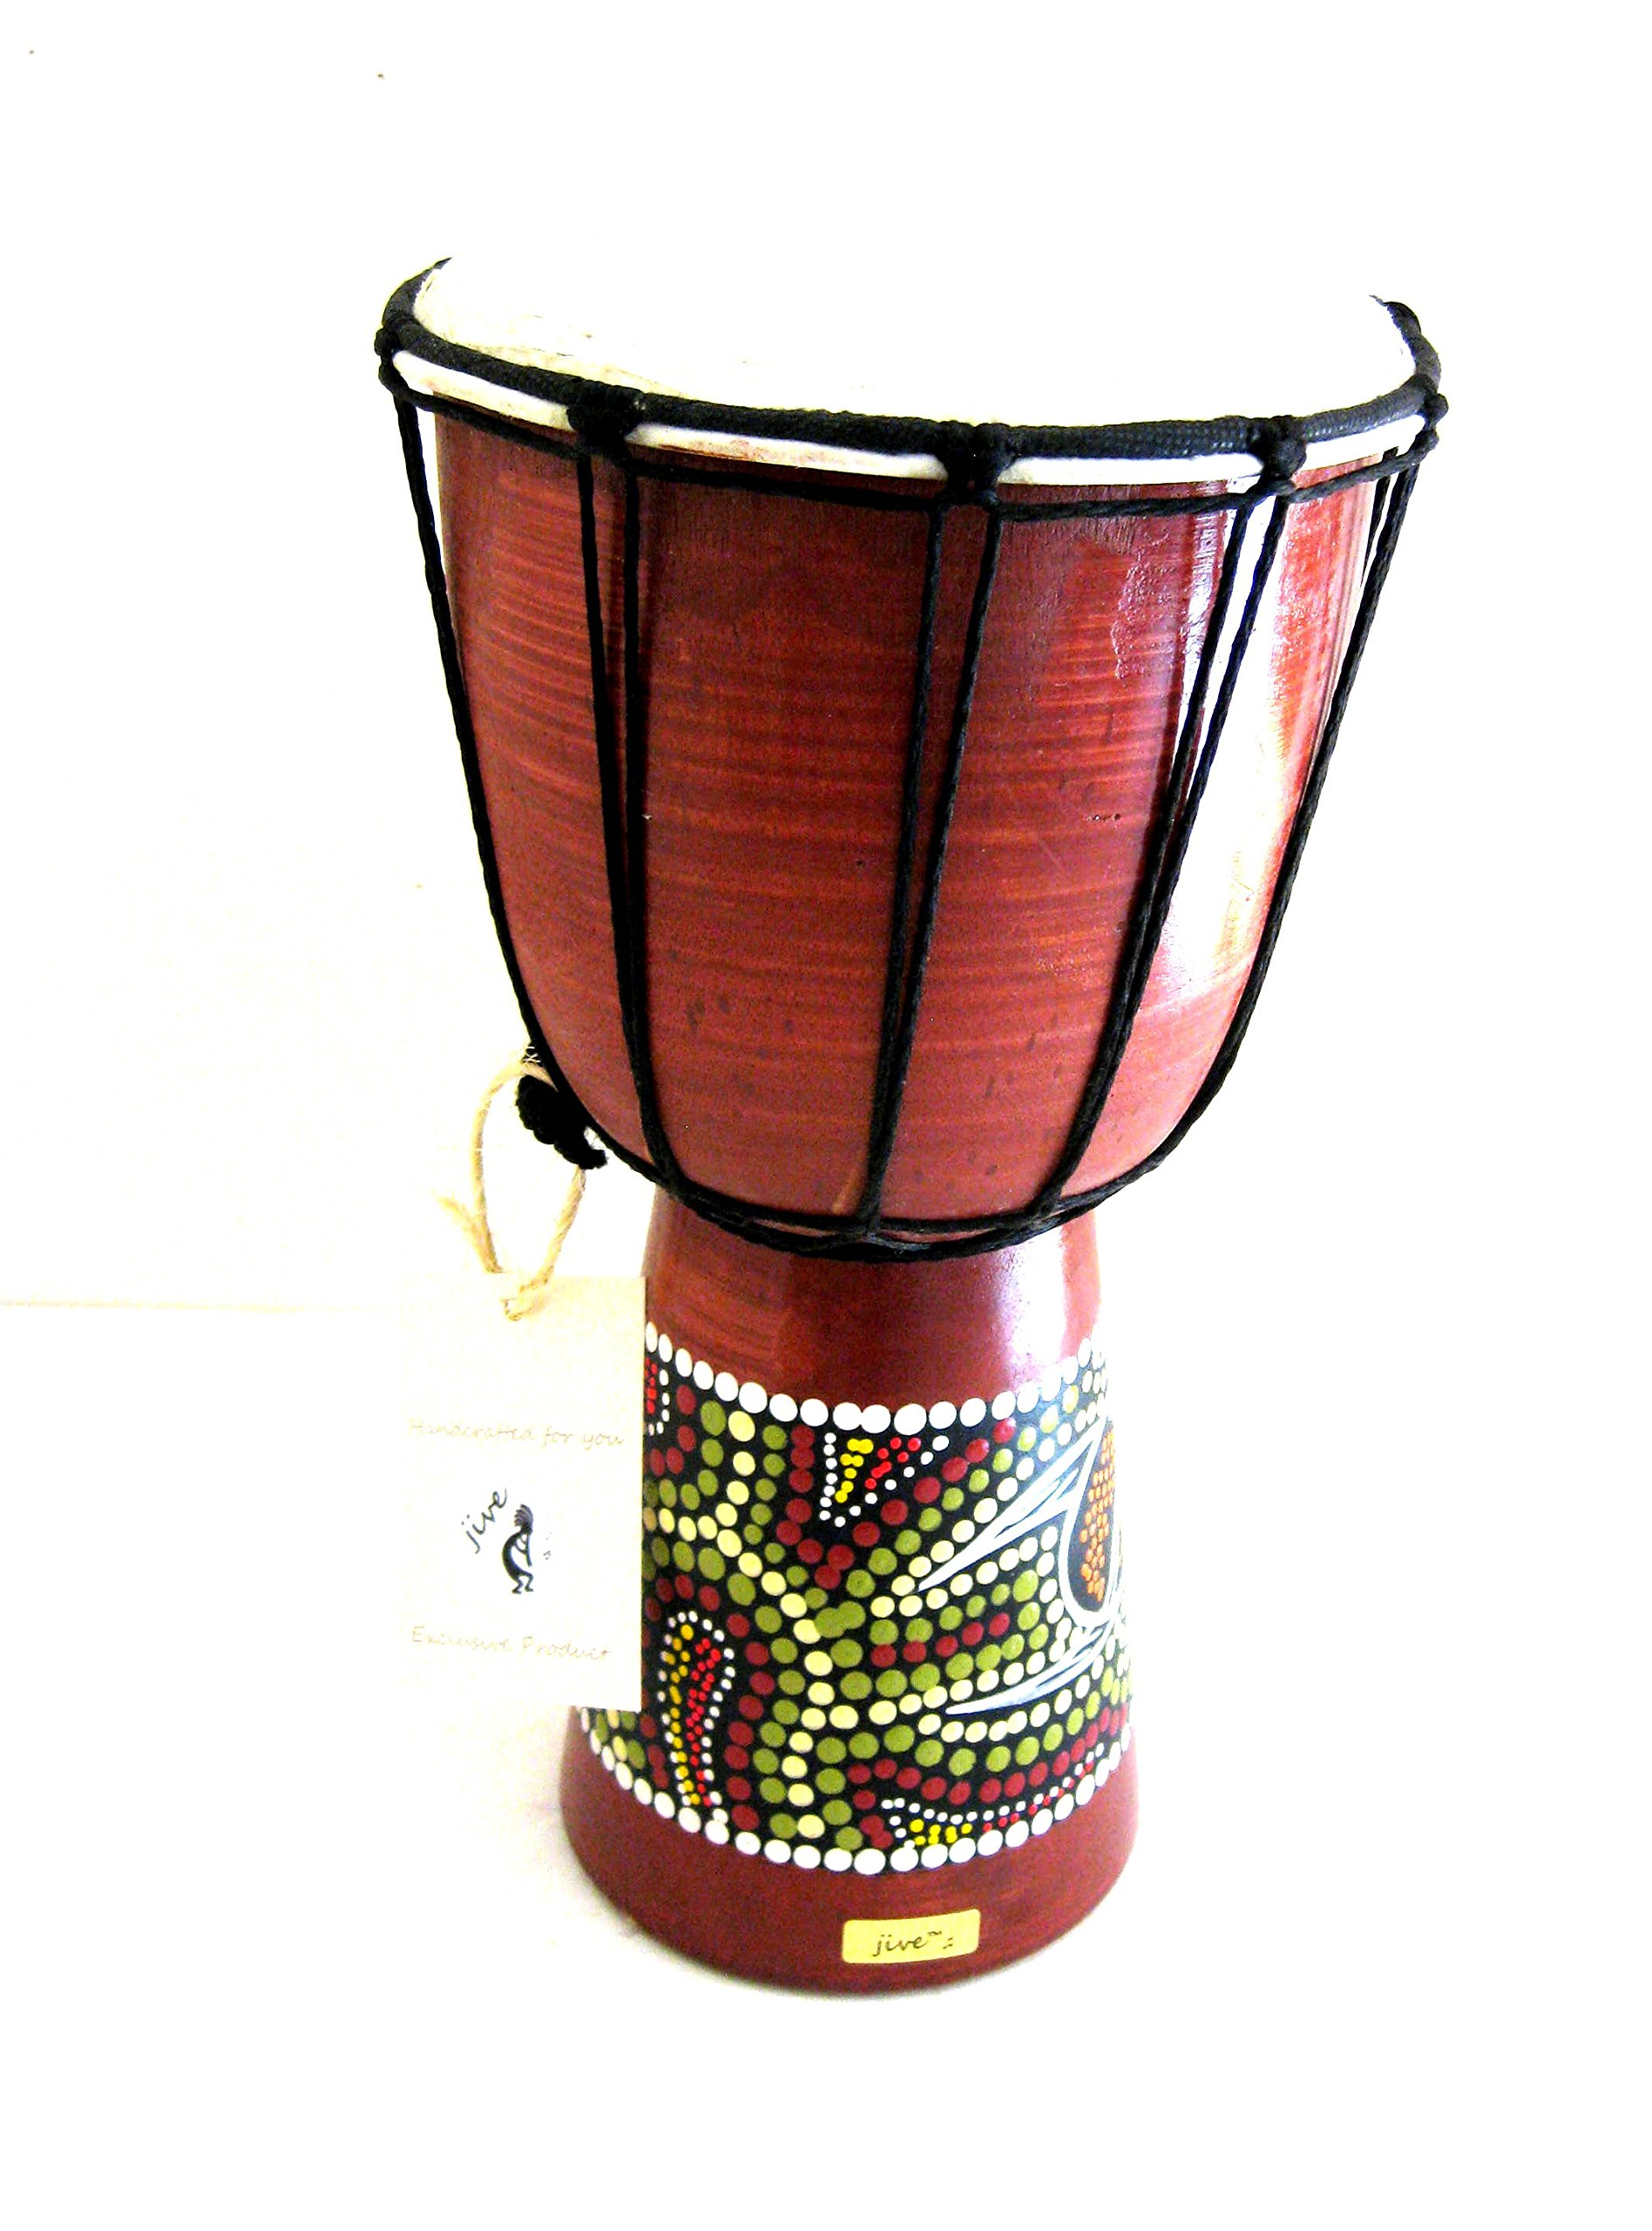 Djembe Drum Bongo Congo African Drum -MED SIZE- 12'', JIVE BRAND- Professional Sound